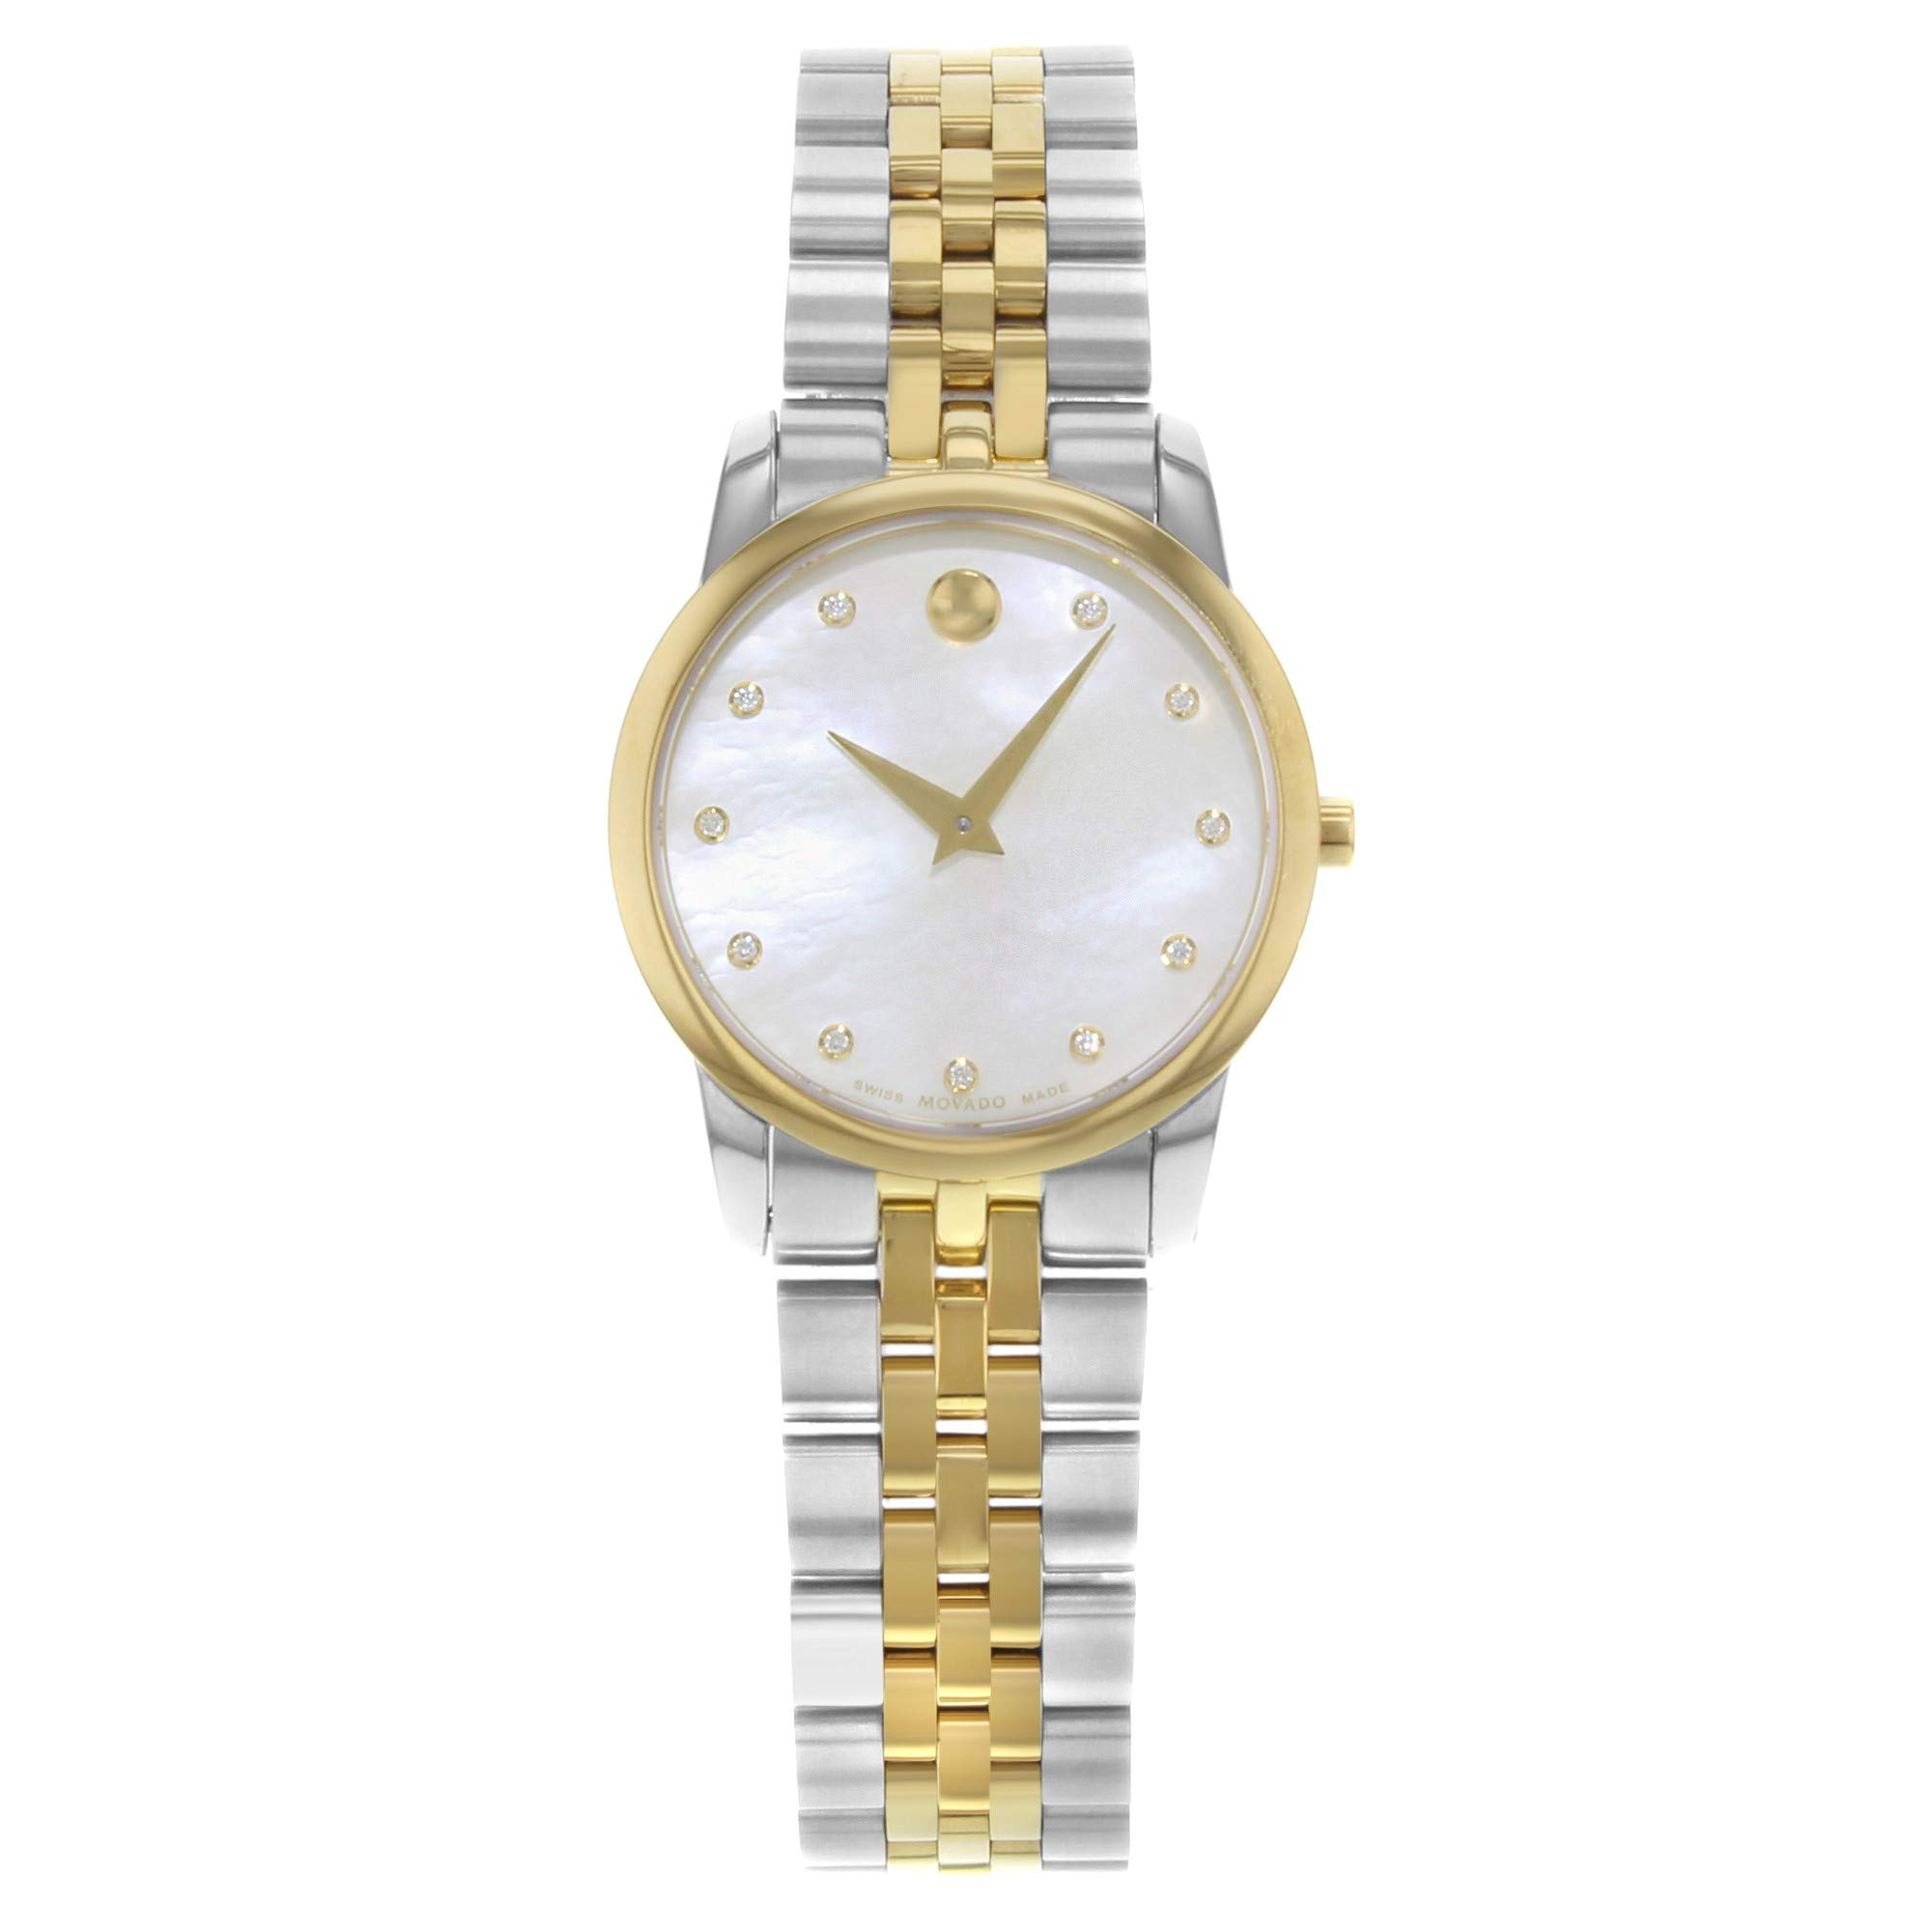 Movado Museum Quartz Female Watch 606900 (Certified Pre-Owned)